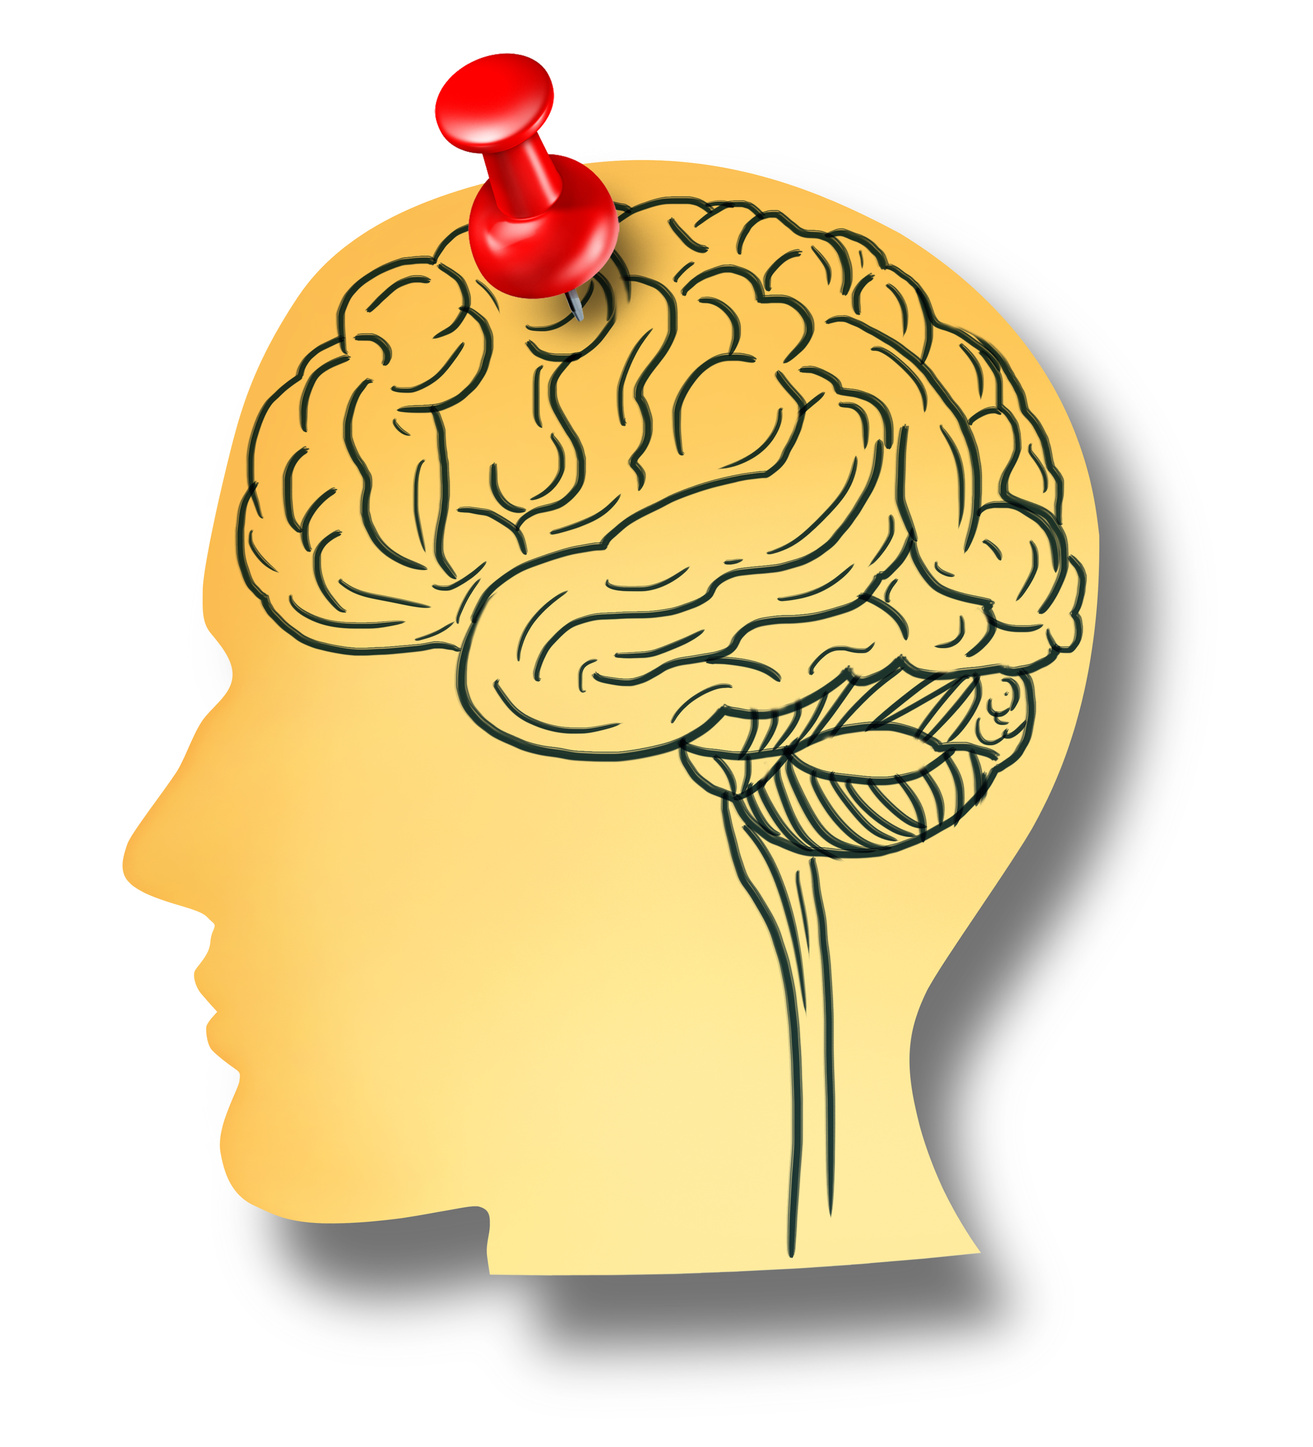 Brain reminder memory loss mental health medical concept of Dementia and Alzheimer's disease with the medical icon of an office note with a drawing as a shape of a human head pinned to a wall with a red thumb tack.